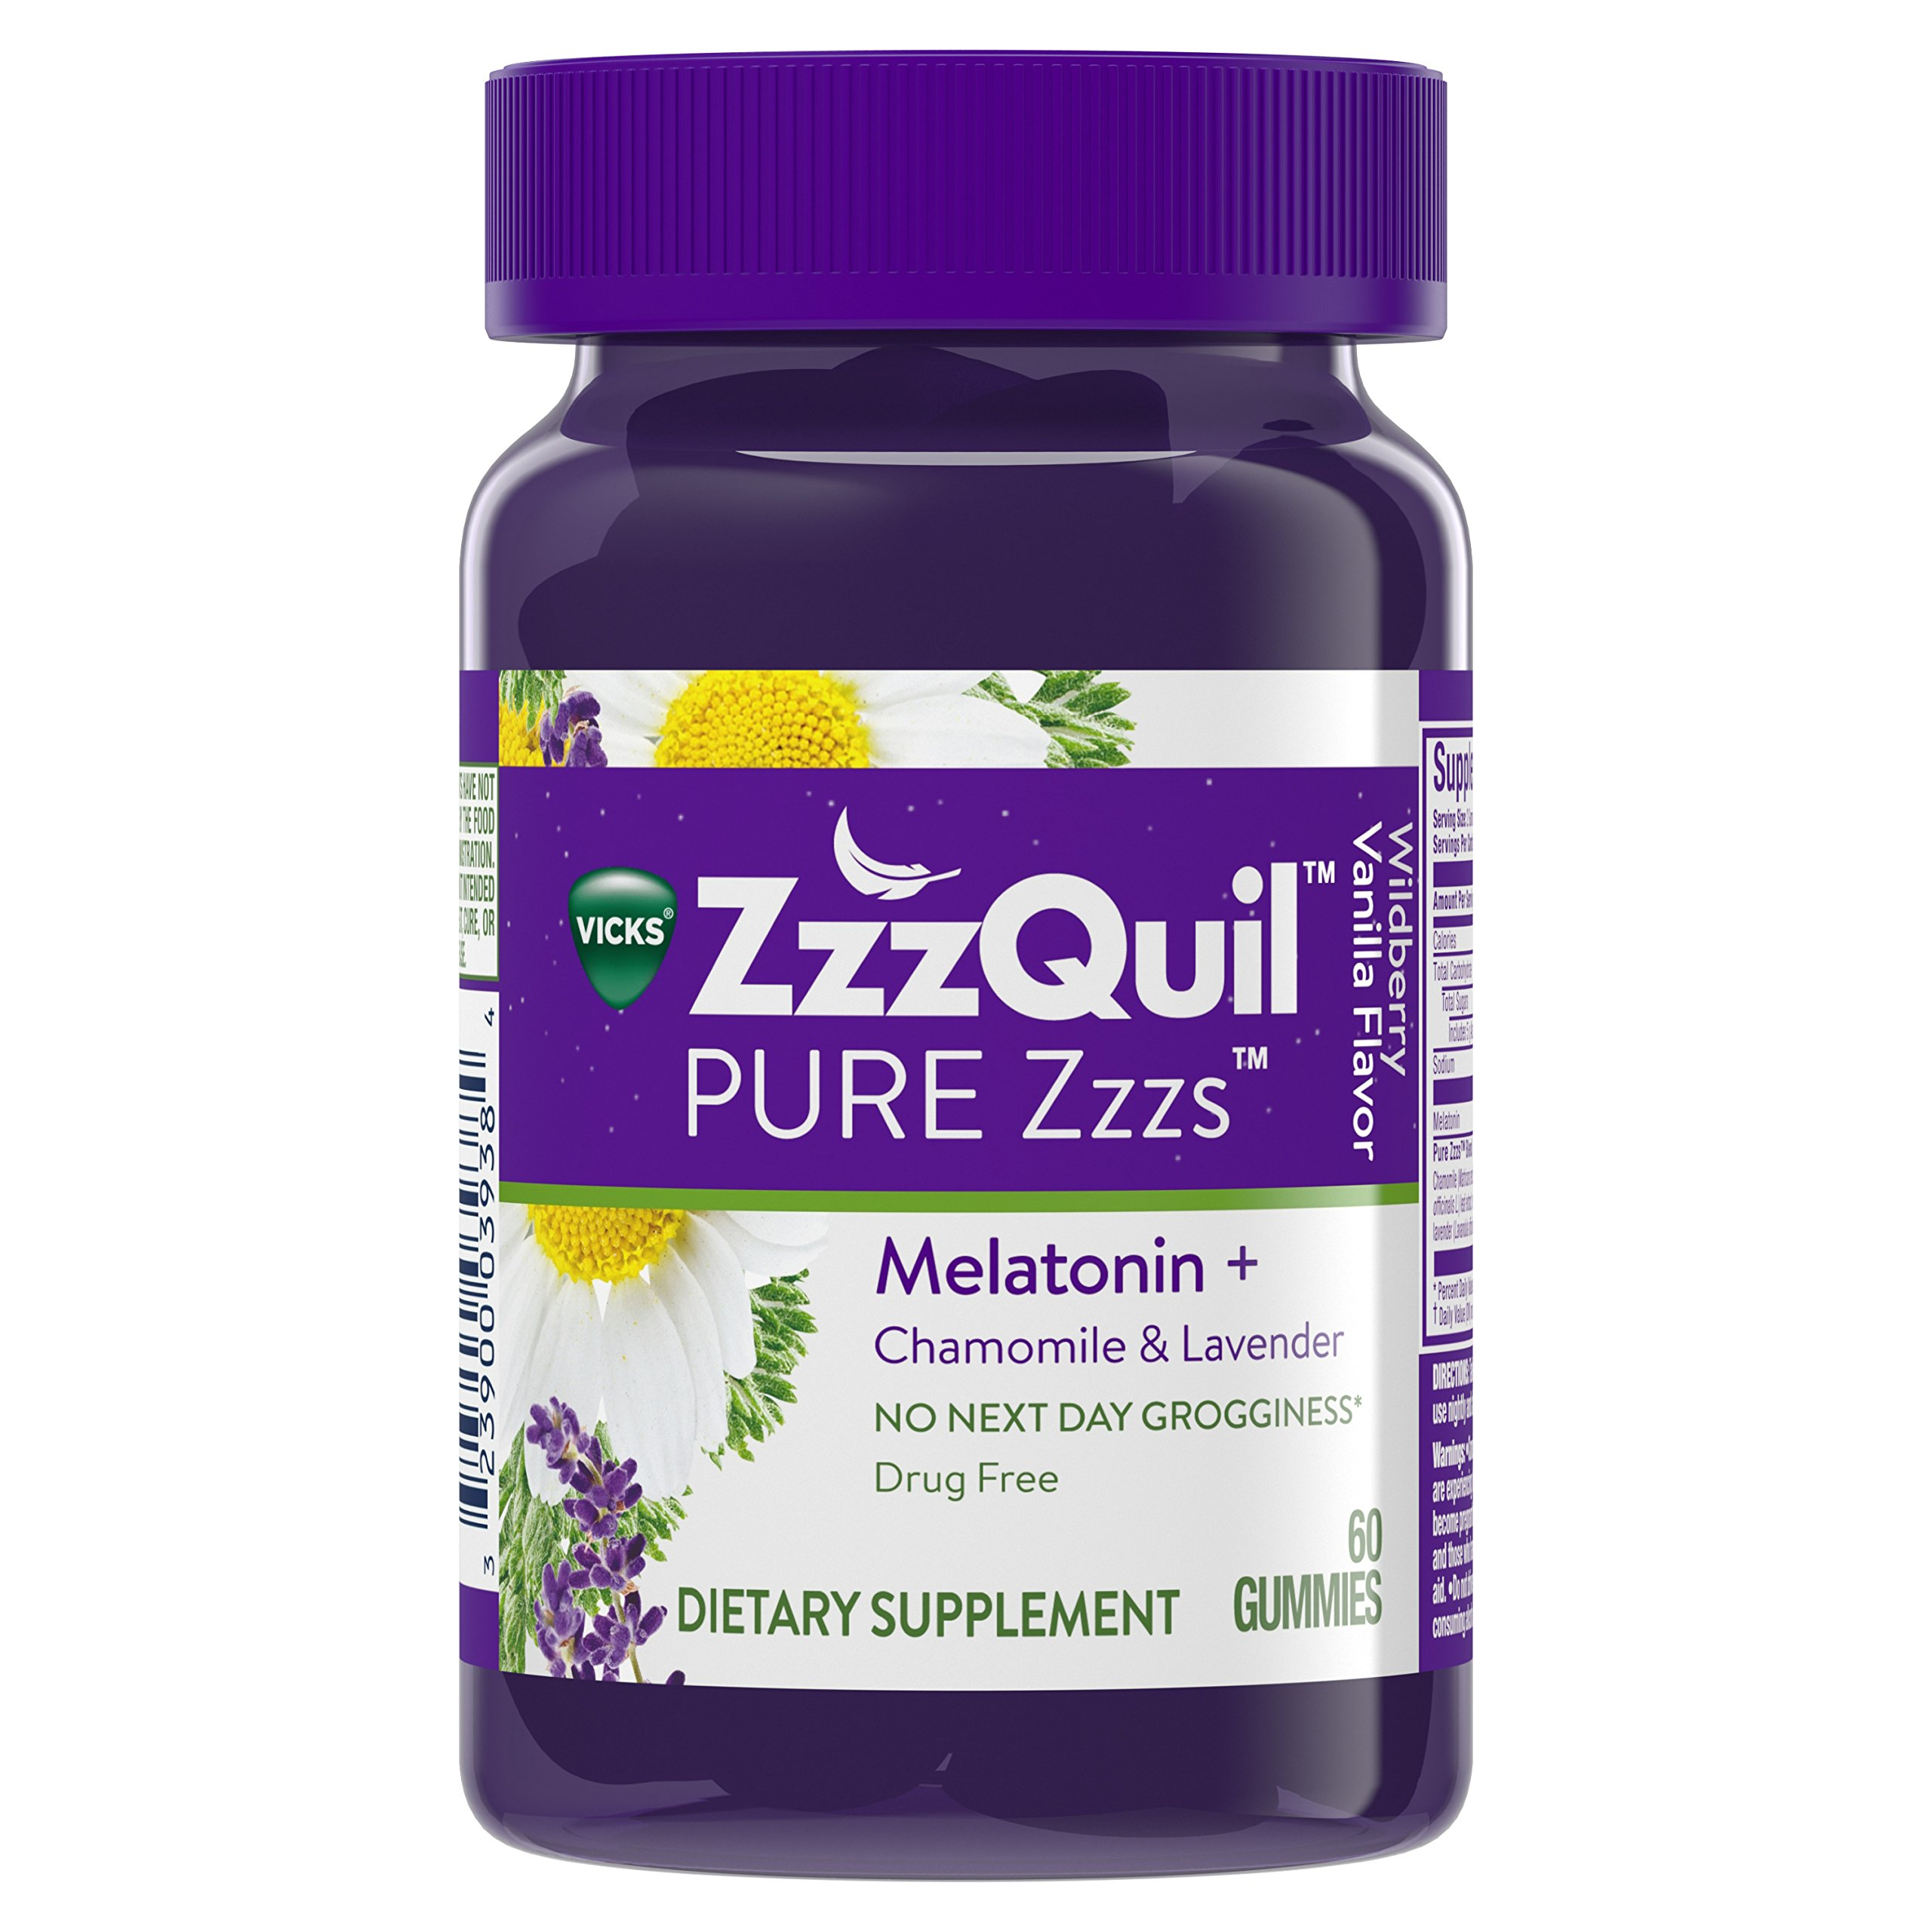 PURE Zzzs Melatonin Natural Flavor Sleep Aid Gummies with Chamomile & Lavender by Vicks ZzzQuil, 1mg per gummy, 60 ct